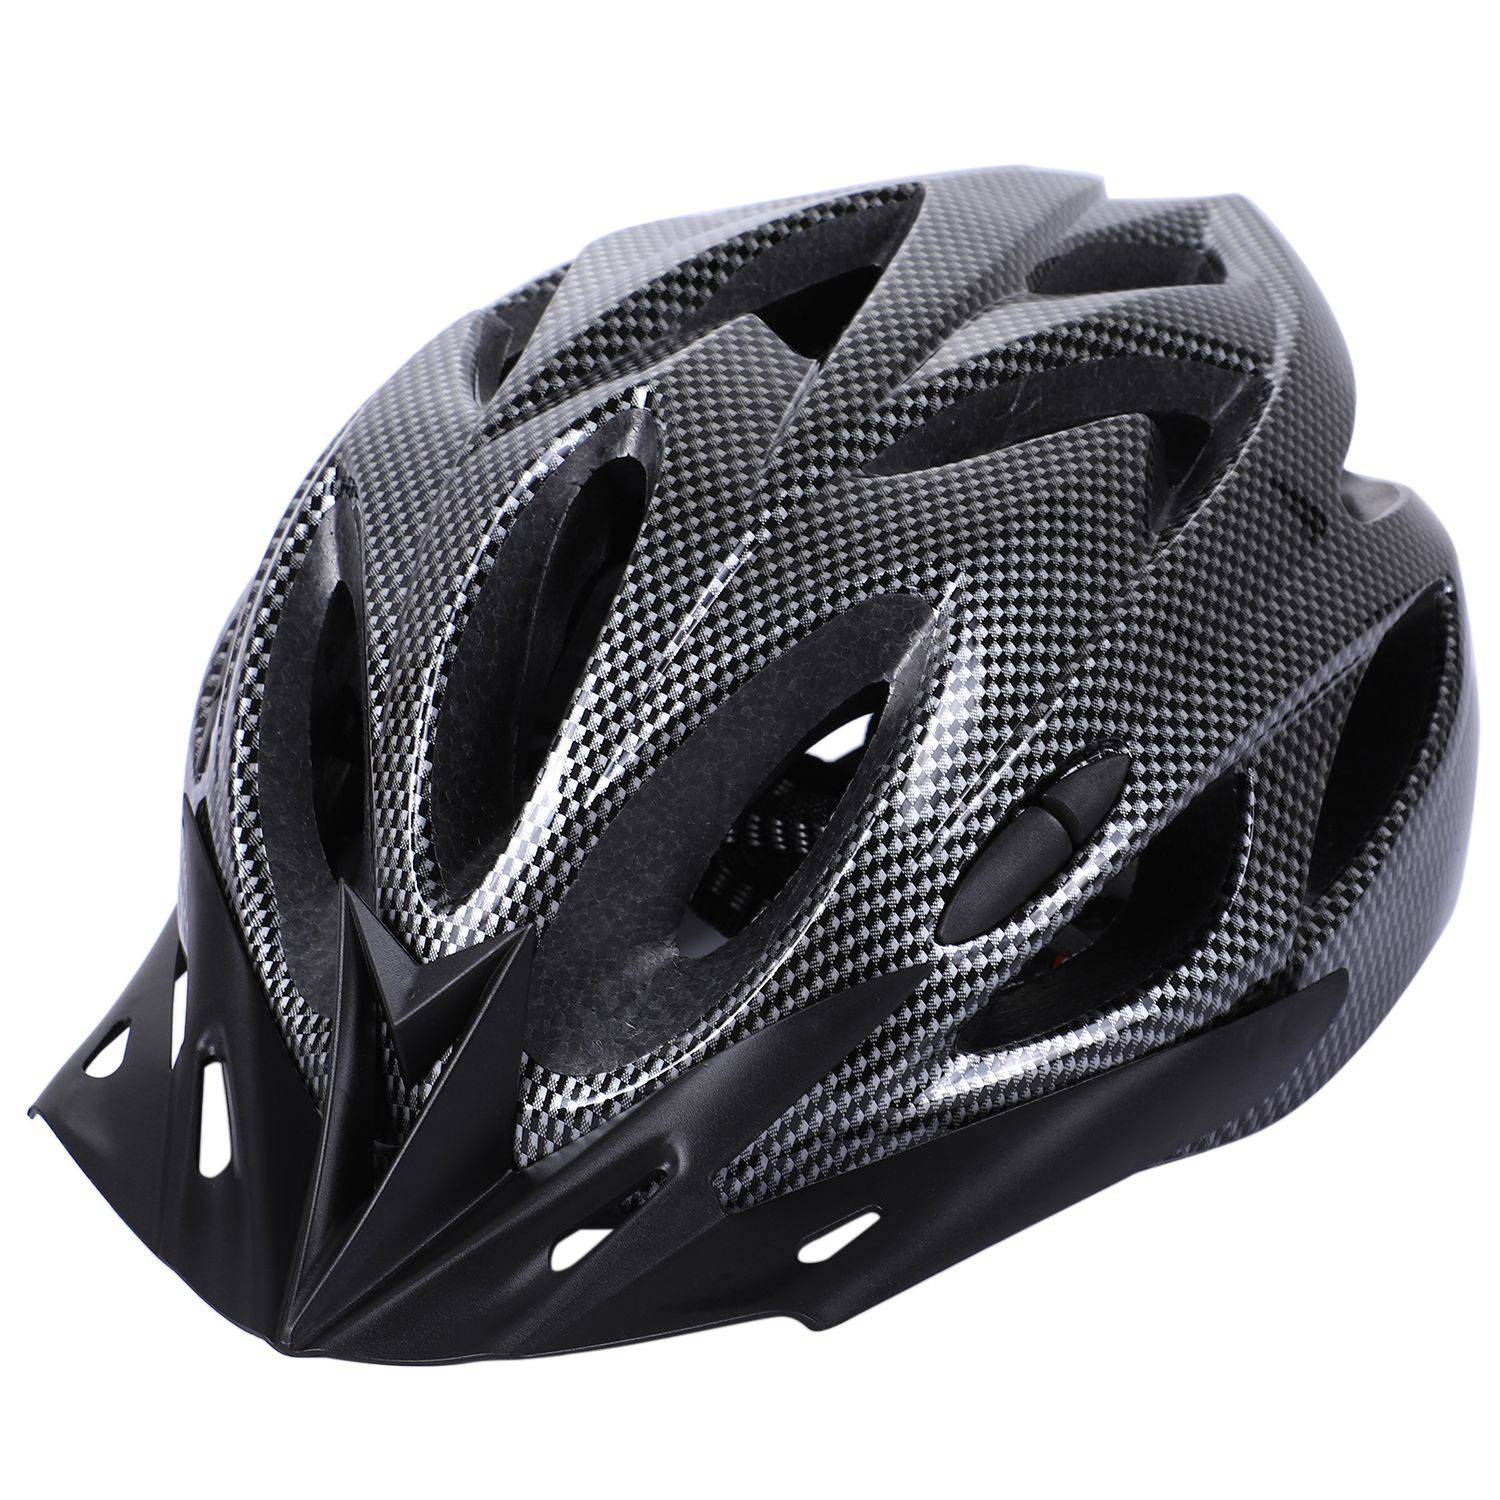 Carbon Bicycle Helmet Bike MTB Cycling Adult Adjustable Unisex Safety Helmet